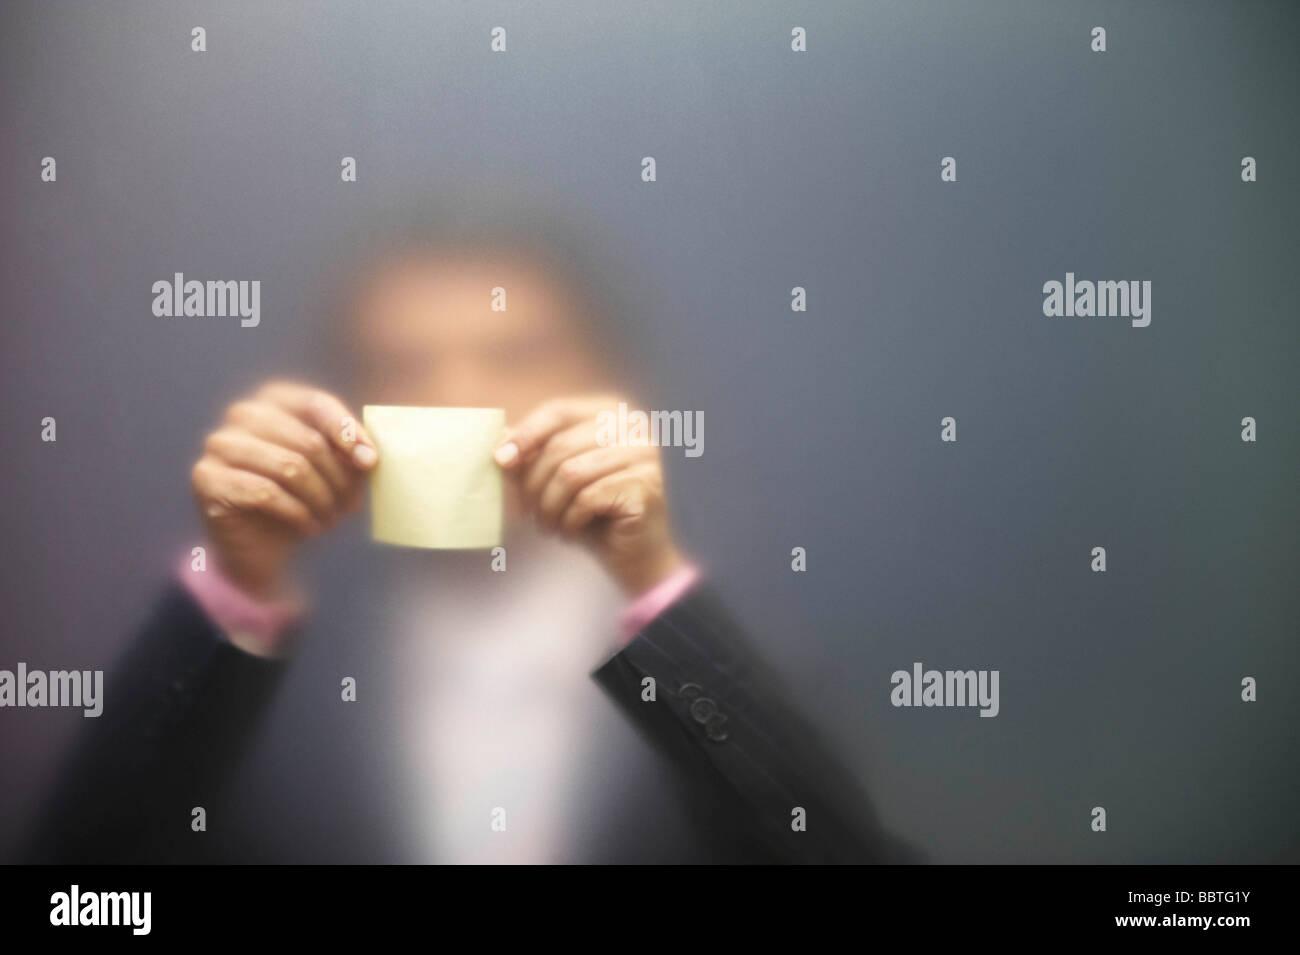 Man sticking note on frosted screen - Stock Image